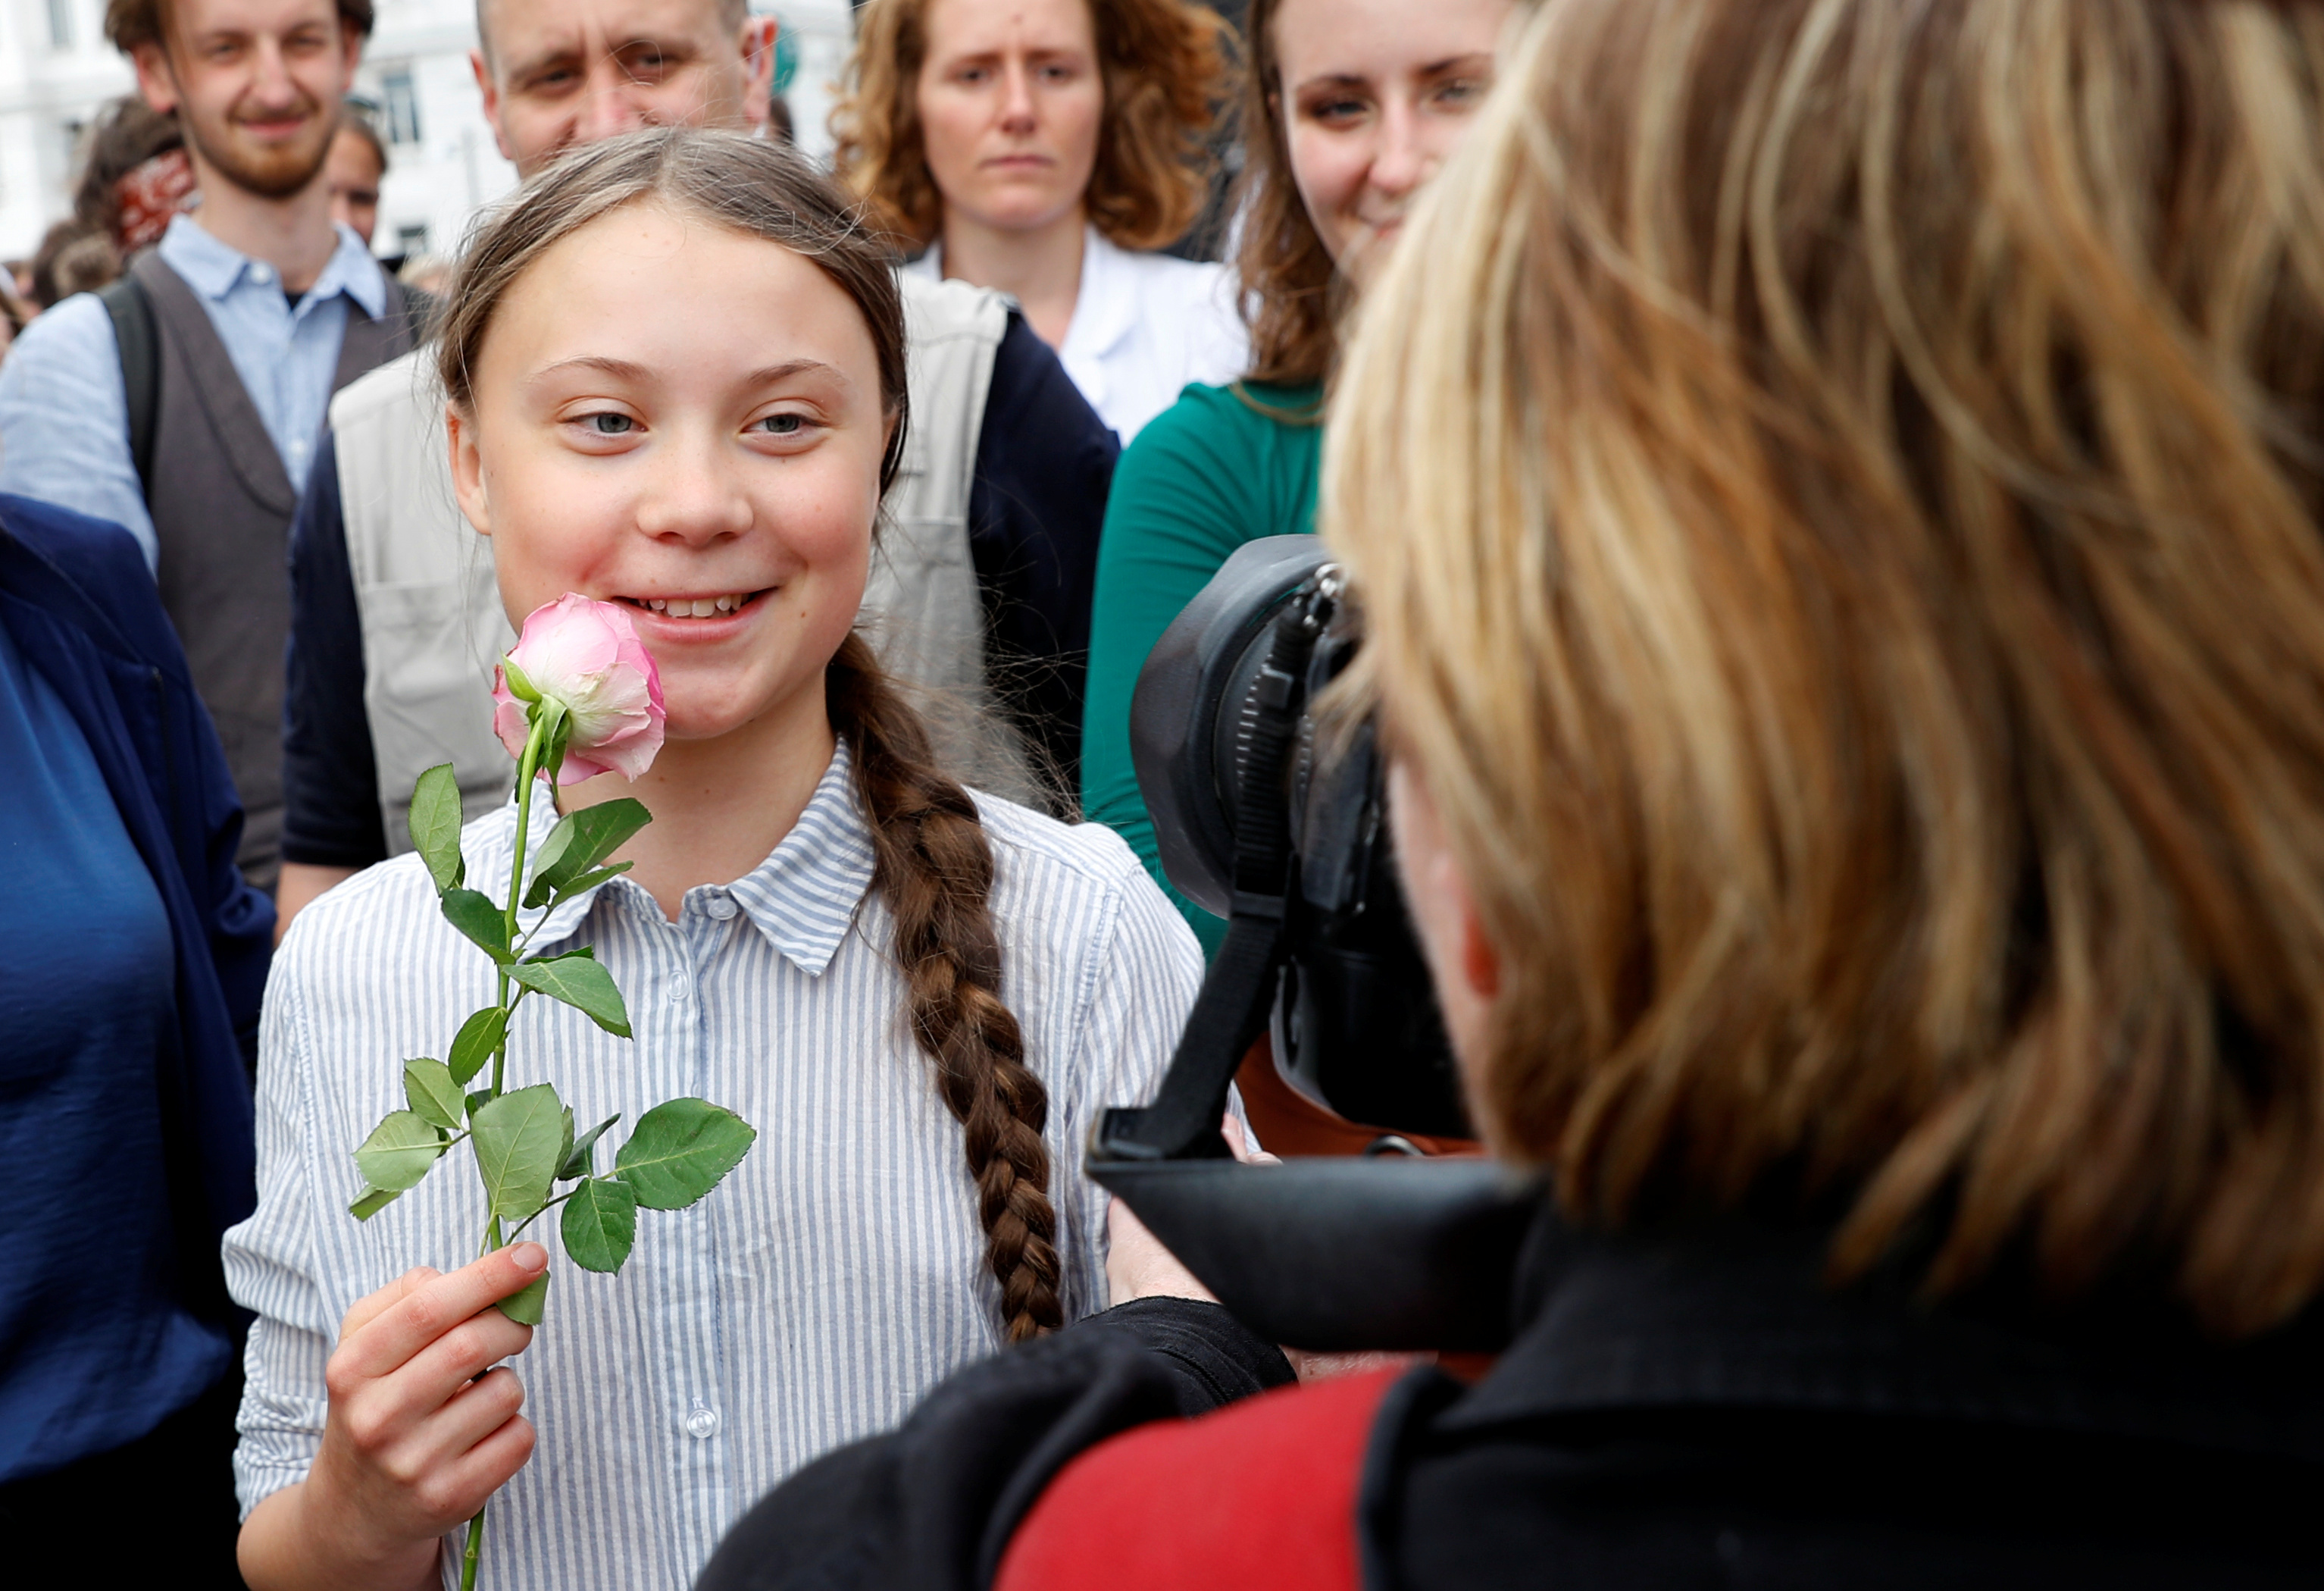 """Greta Thunberg attends a demonstration calling for action on climate change, during the """"Fridays for Future"""" school strike in Vienna, Austria May 31, 2019. REUTERS/Leonhard Foeger"""